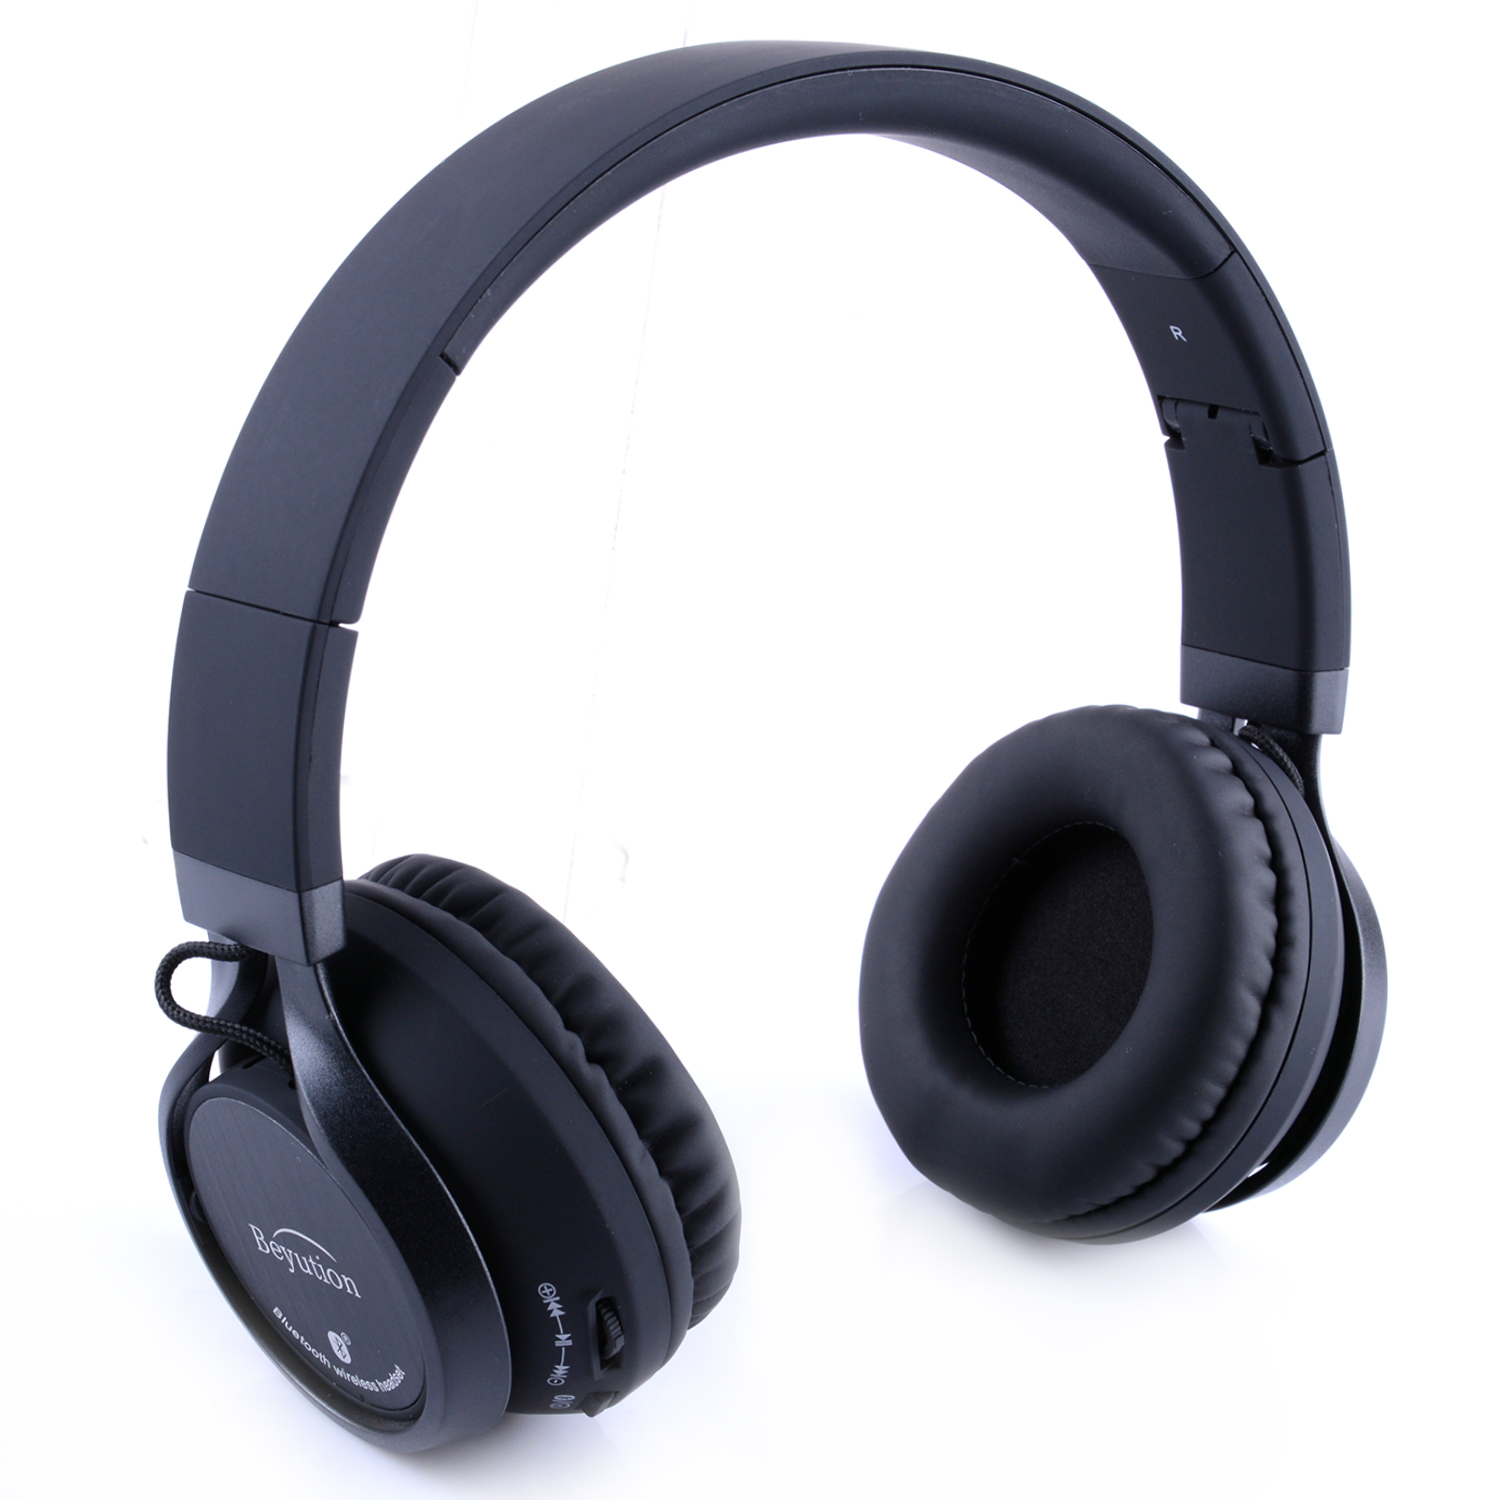 Beyution Black Metal Wireless Bluetooth Headsets Over Ear Bluetooth Headphones with Mic fit for Samsung Smart Phones and all tablet Laptop with Bluetooth Funcstion (BT525-Black-Metal)